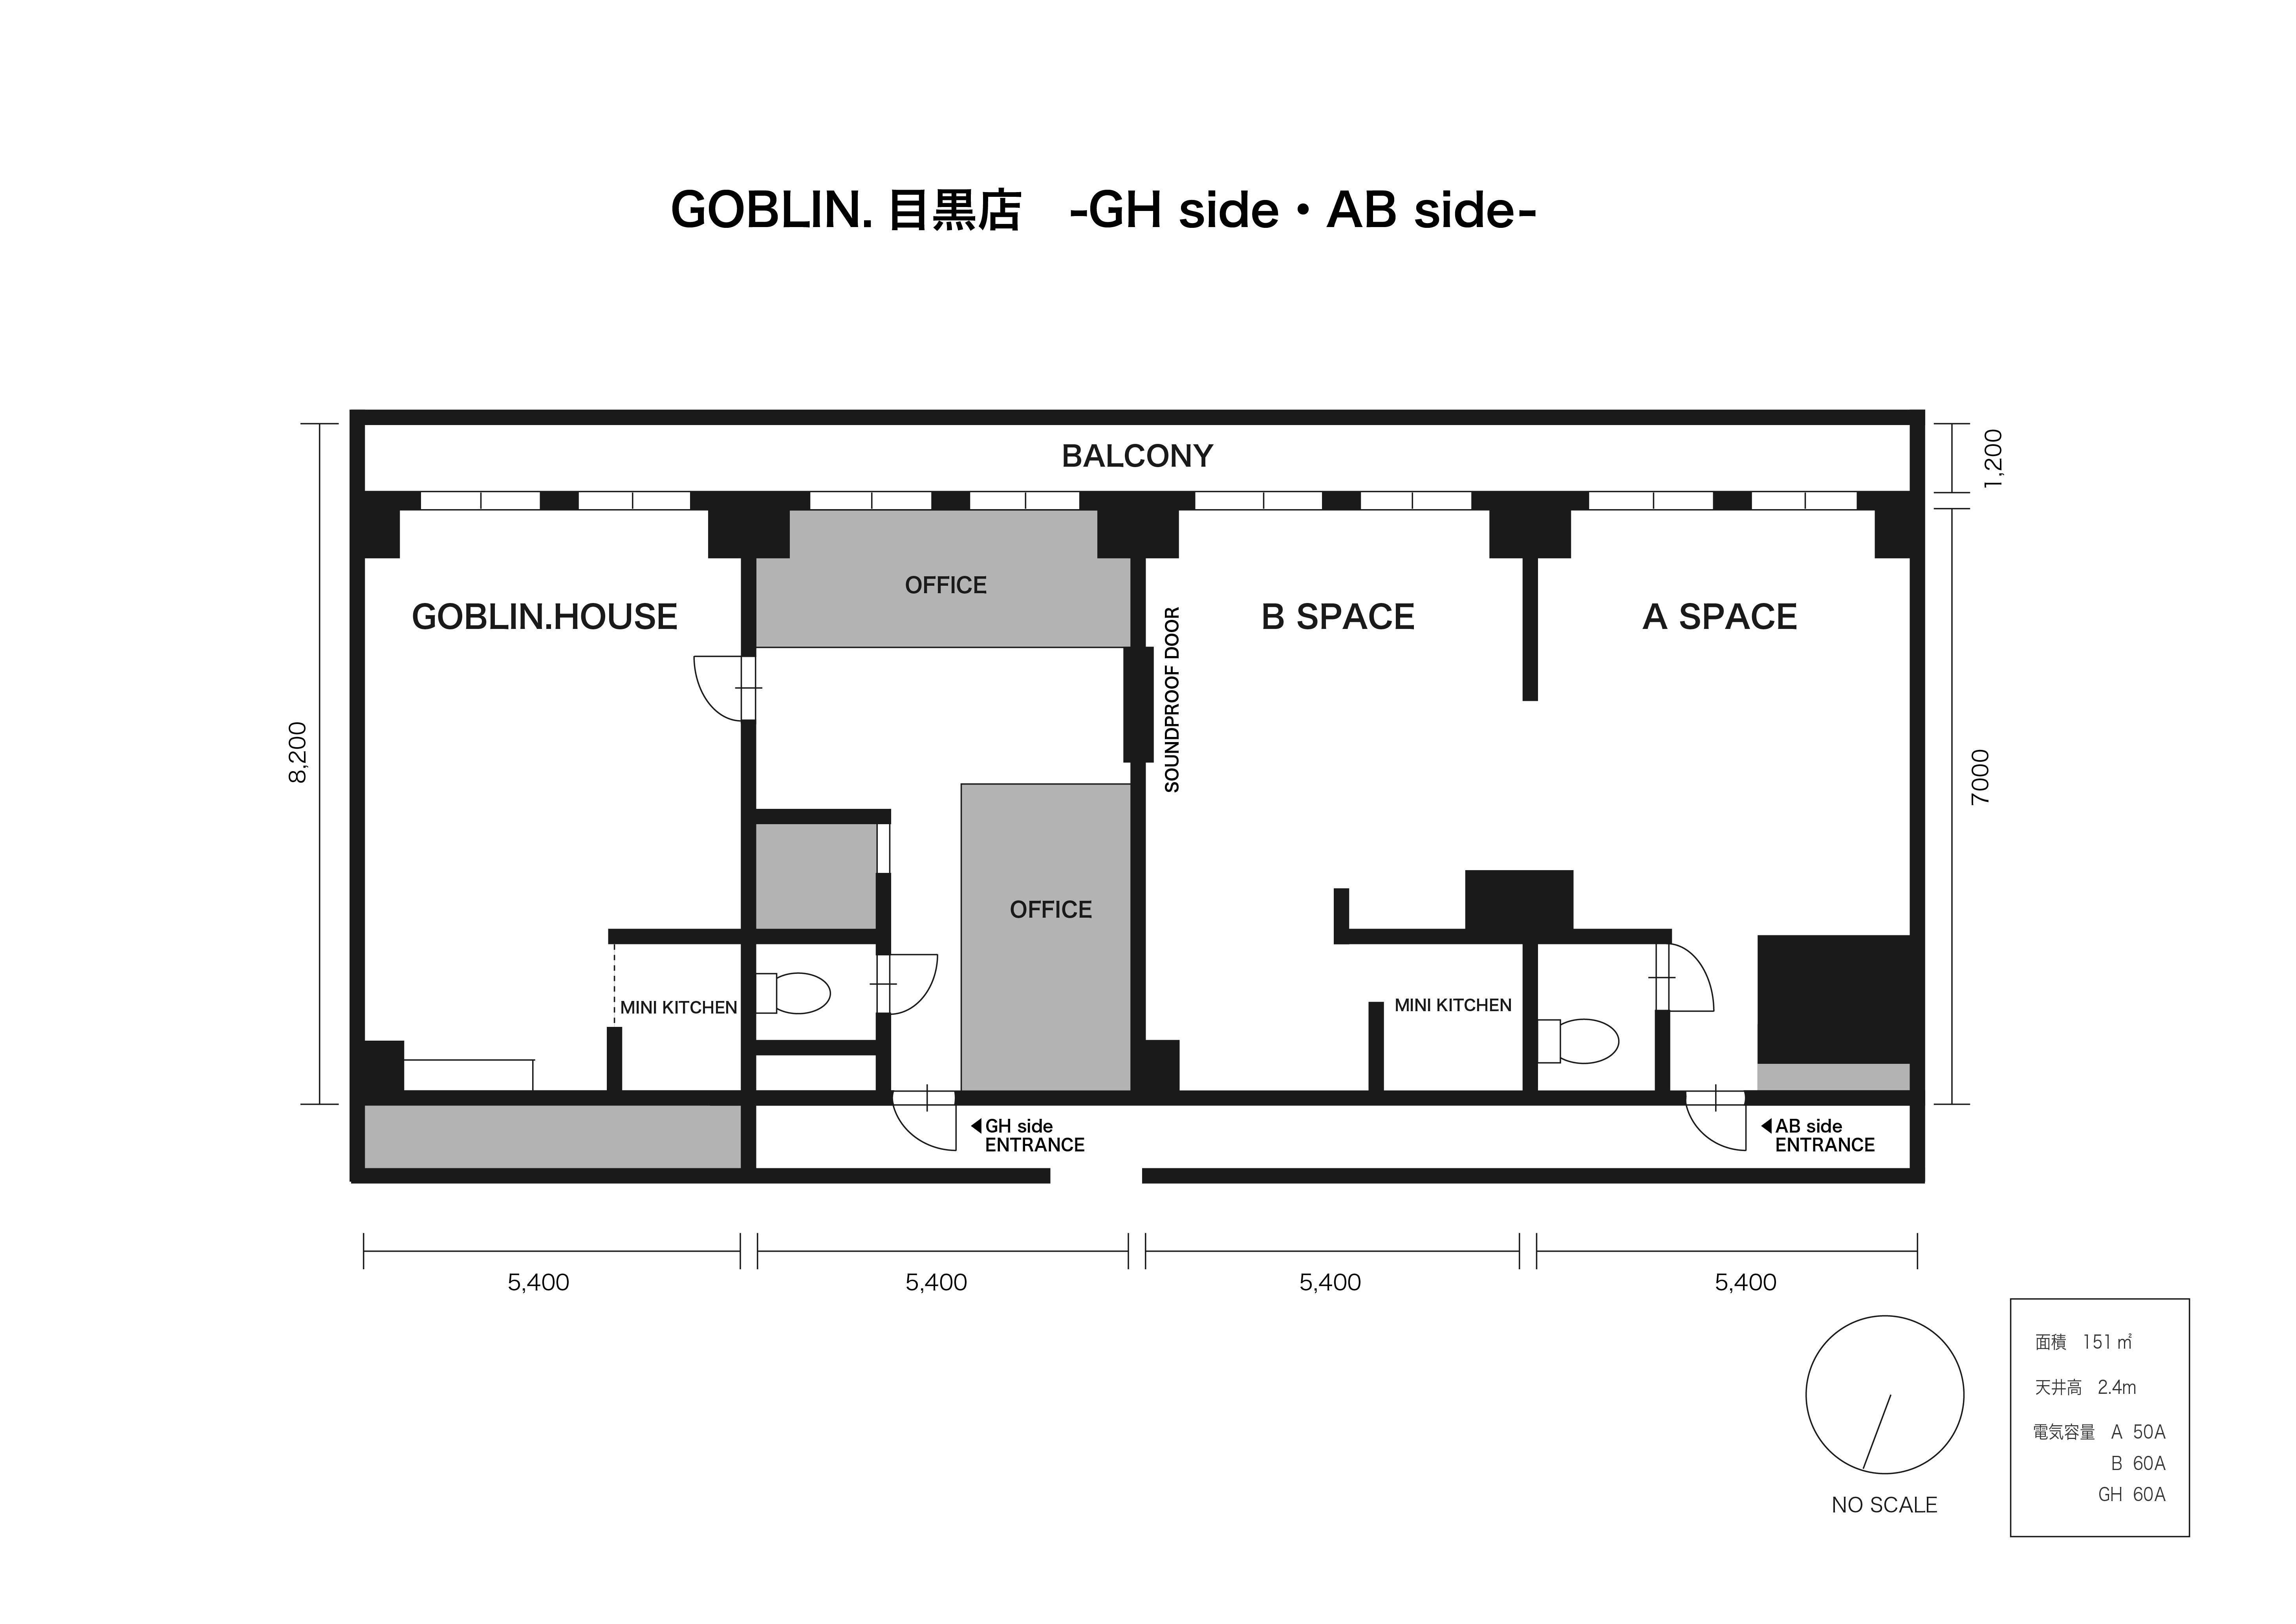 GOBLIN.目黒店 -GH side-平面図